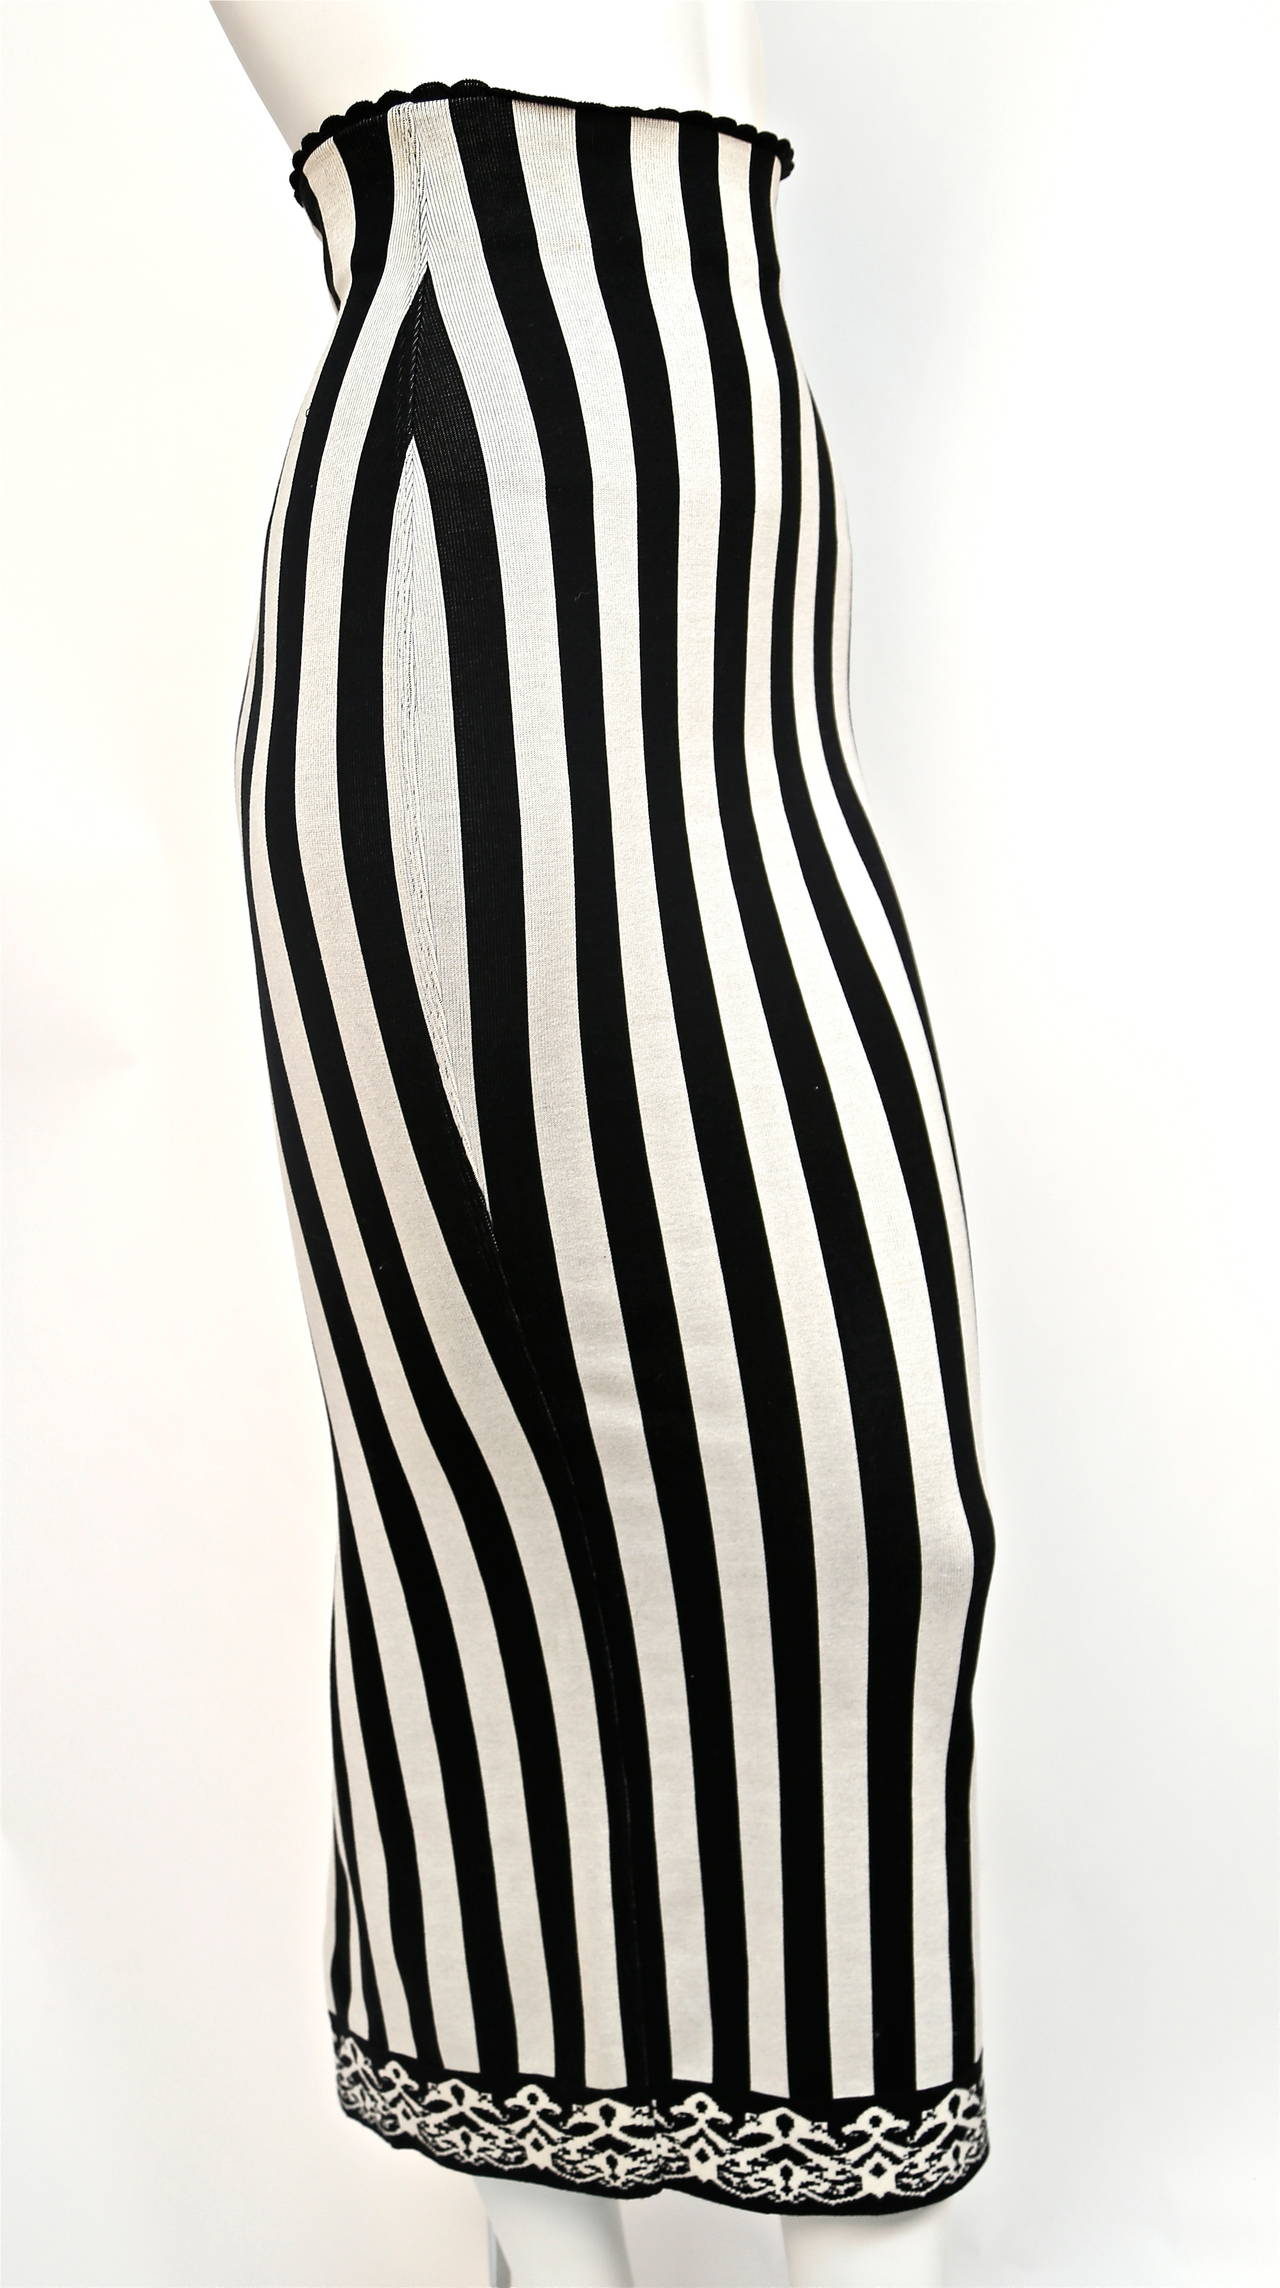 1992 AZZEDINE ALAIA black and white striped skirt In Excellent Condition For Sale In San Fransisco, CA